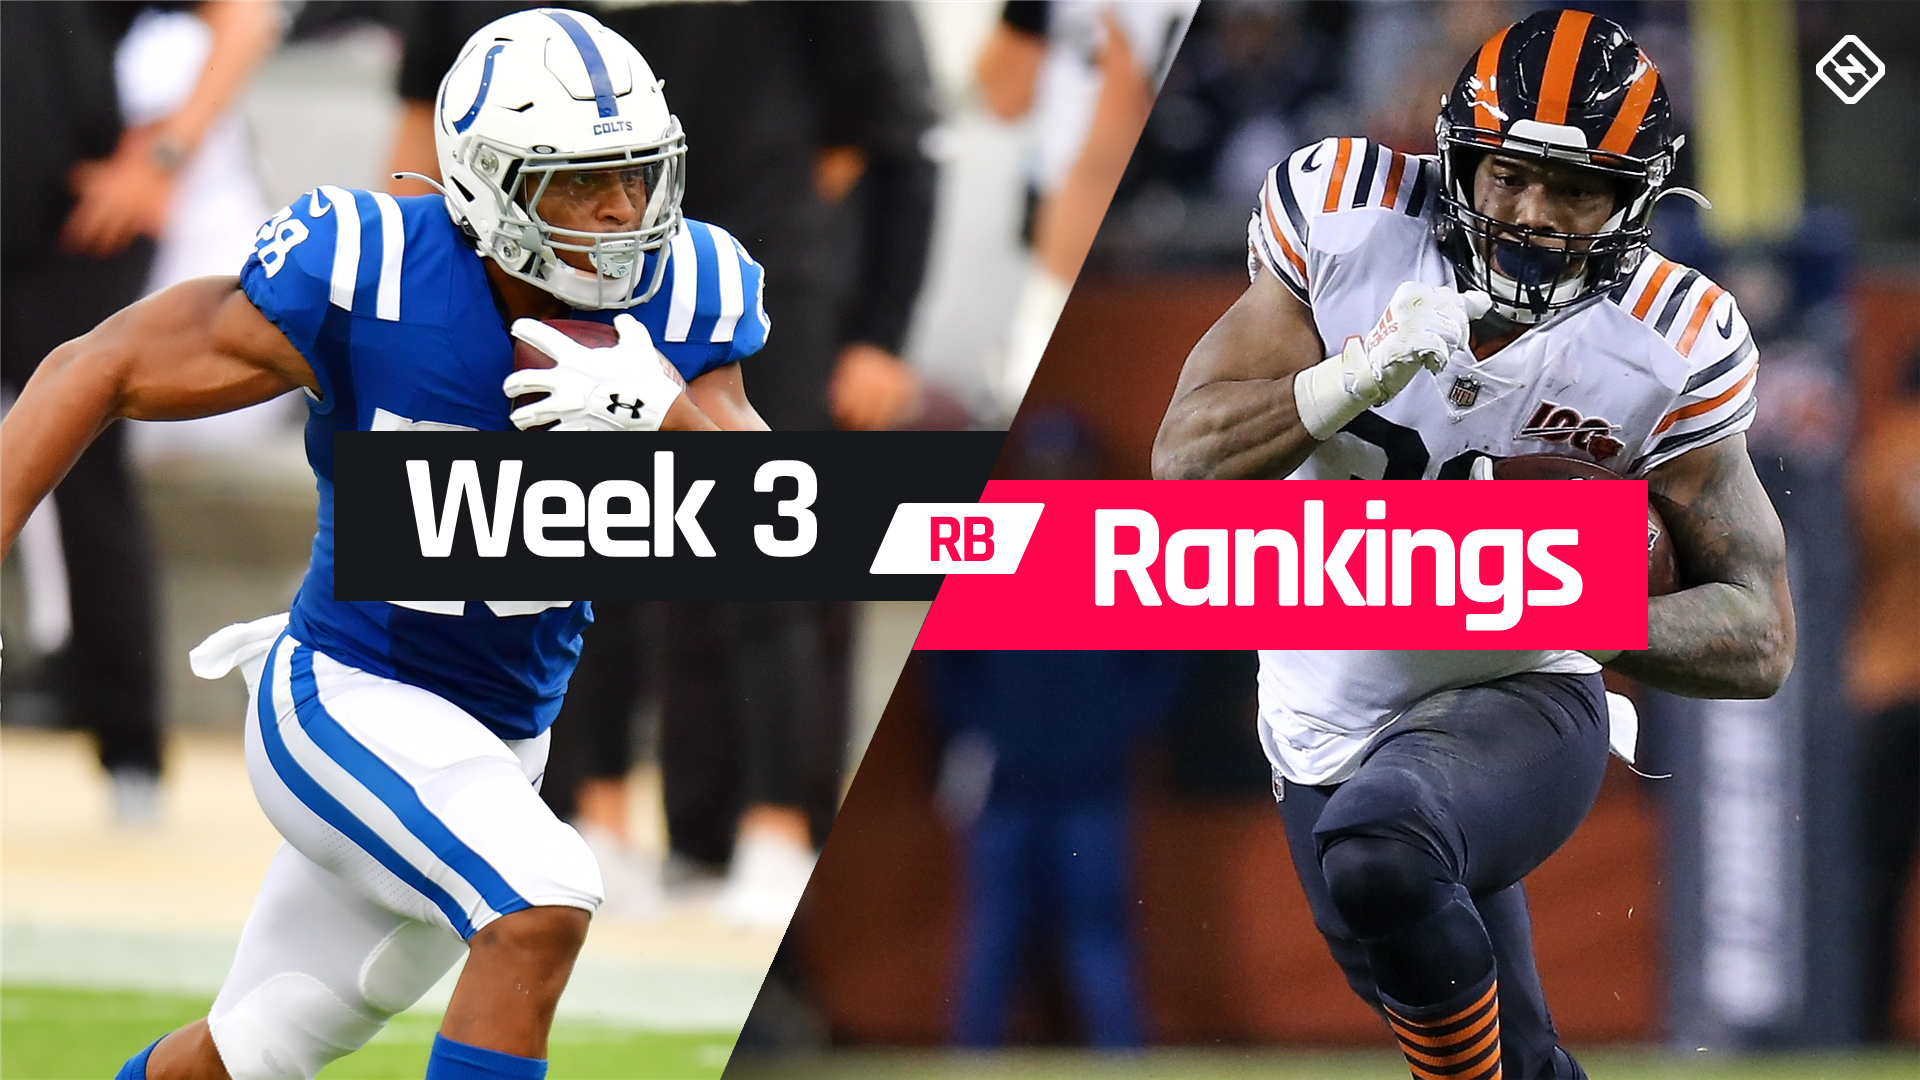 Week 3 Fantasy RB Rankings: Must starts, sleepers, potential busts at running back...